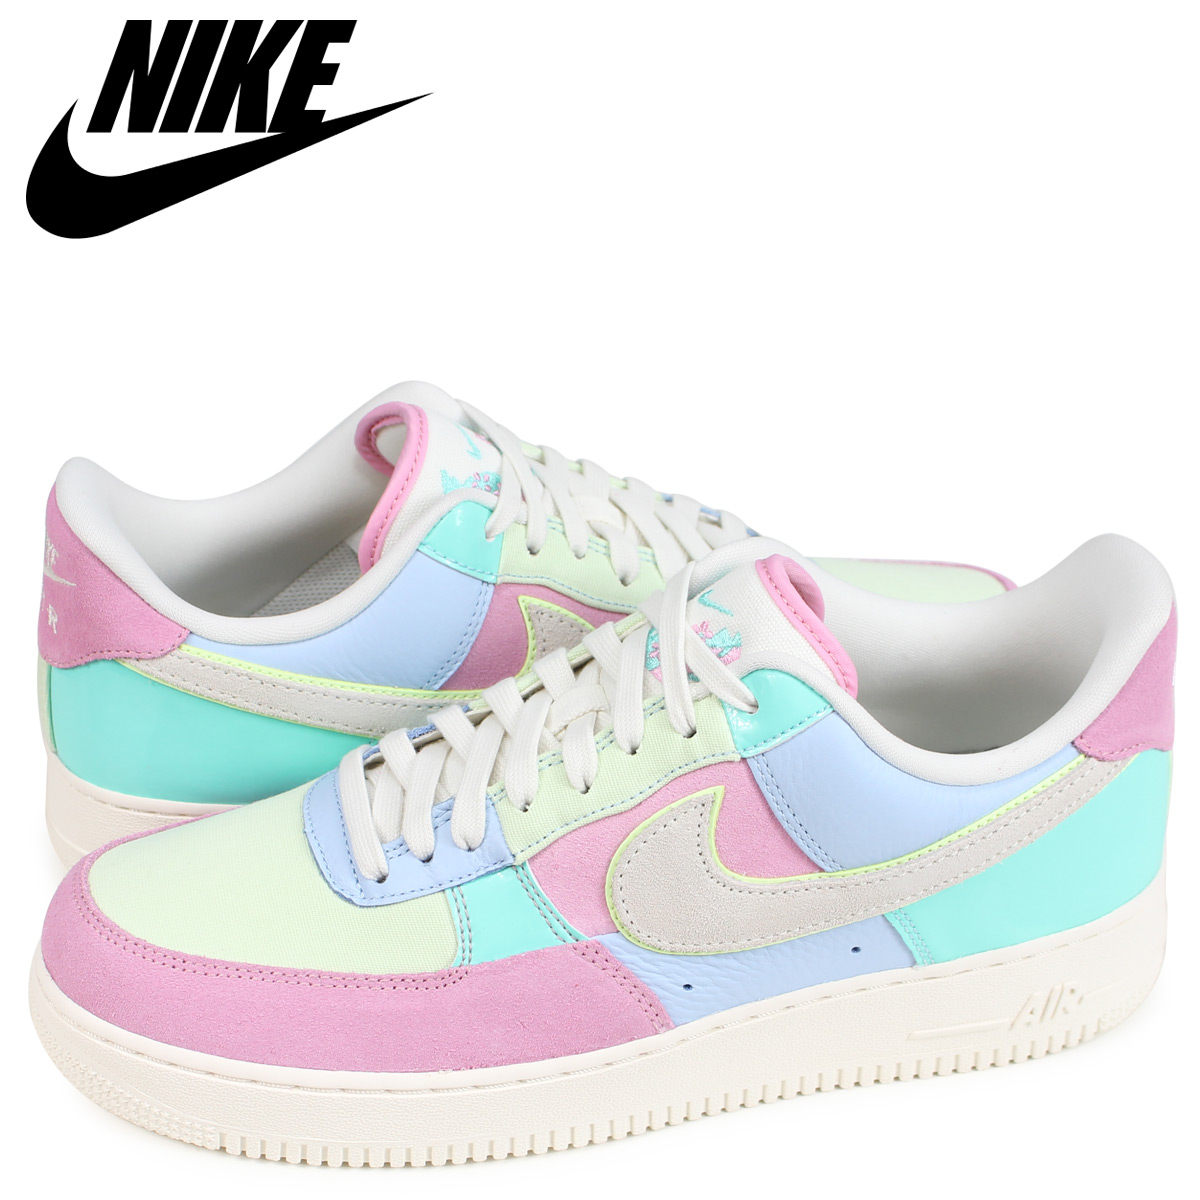 purchase cheap b74d9 21d46 NIKE Nike air force 1 sneakers men AIR FORCE 1 LOW EASTER EGG pink  AH8462-400